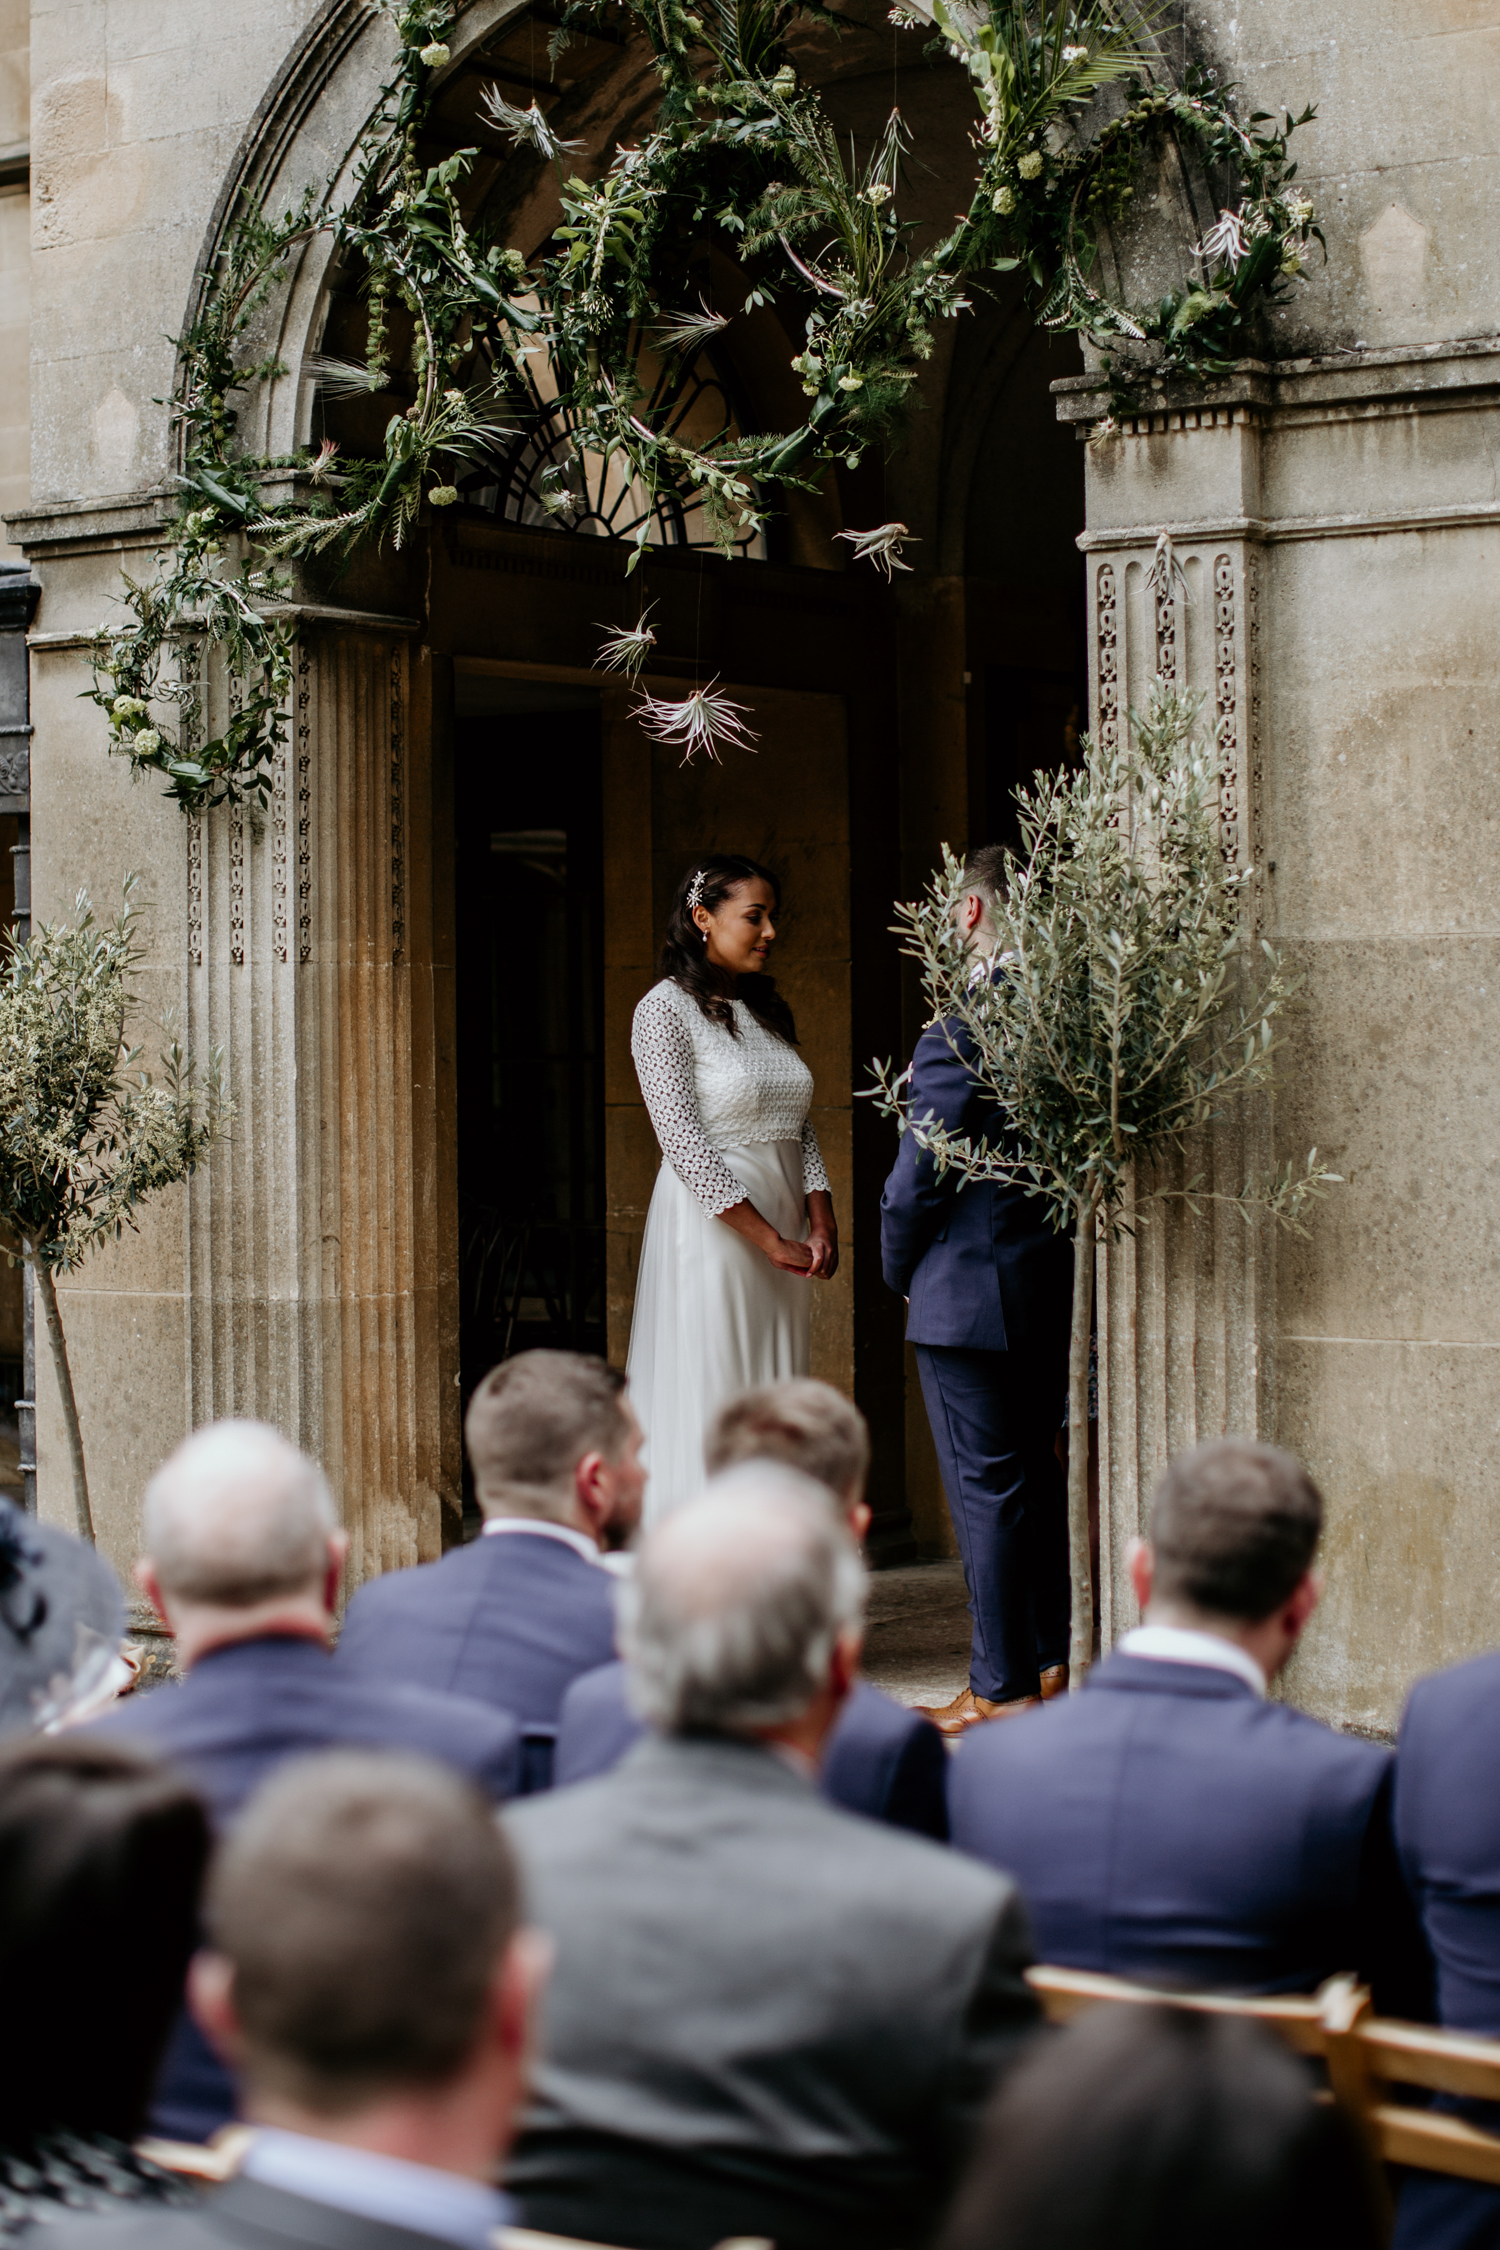 wedding vows during an outdoor wedding ceremony at Coombe Lodge Blagdon wedding venue